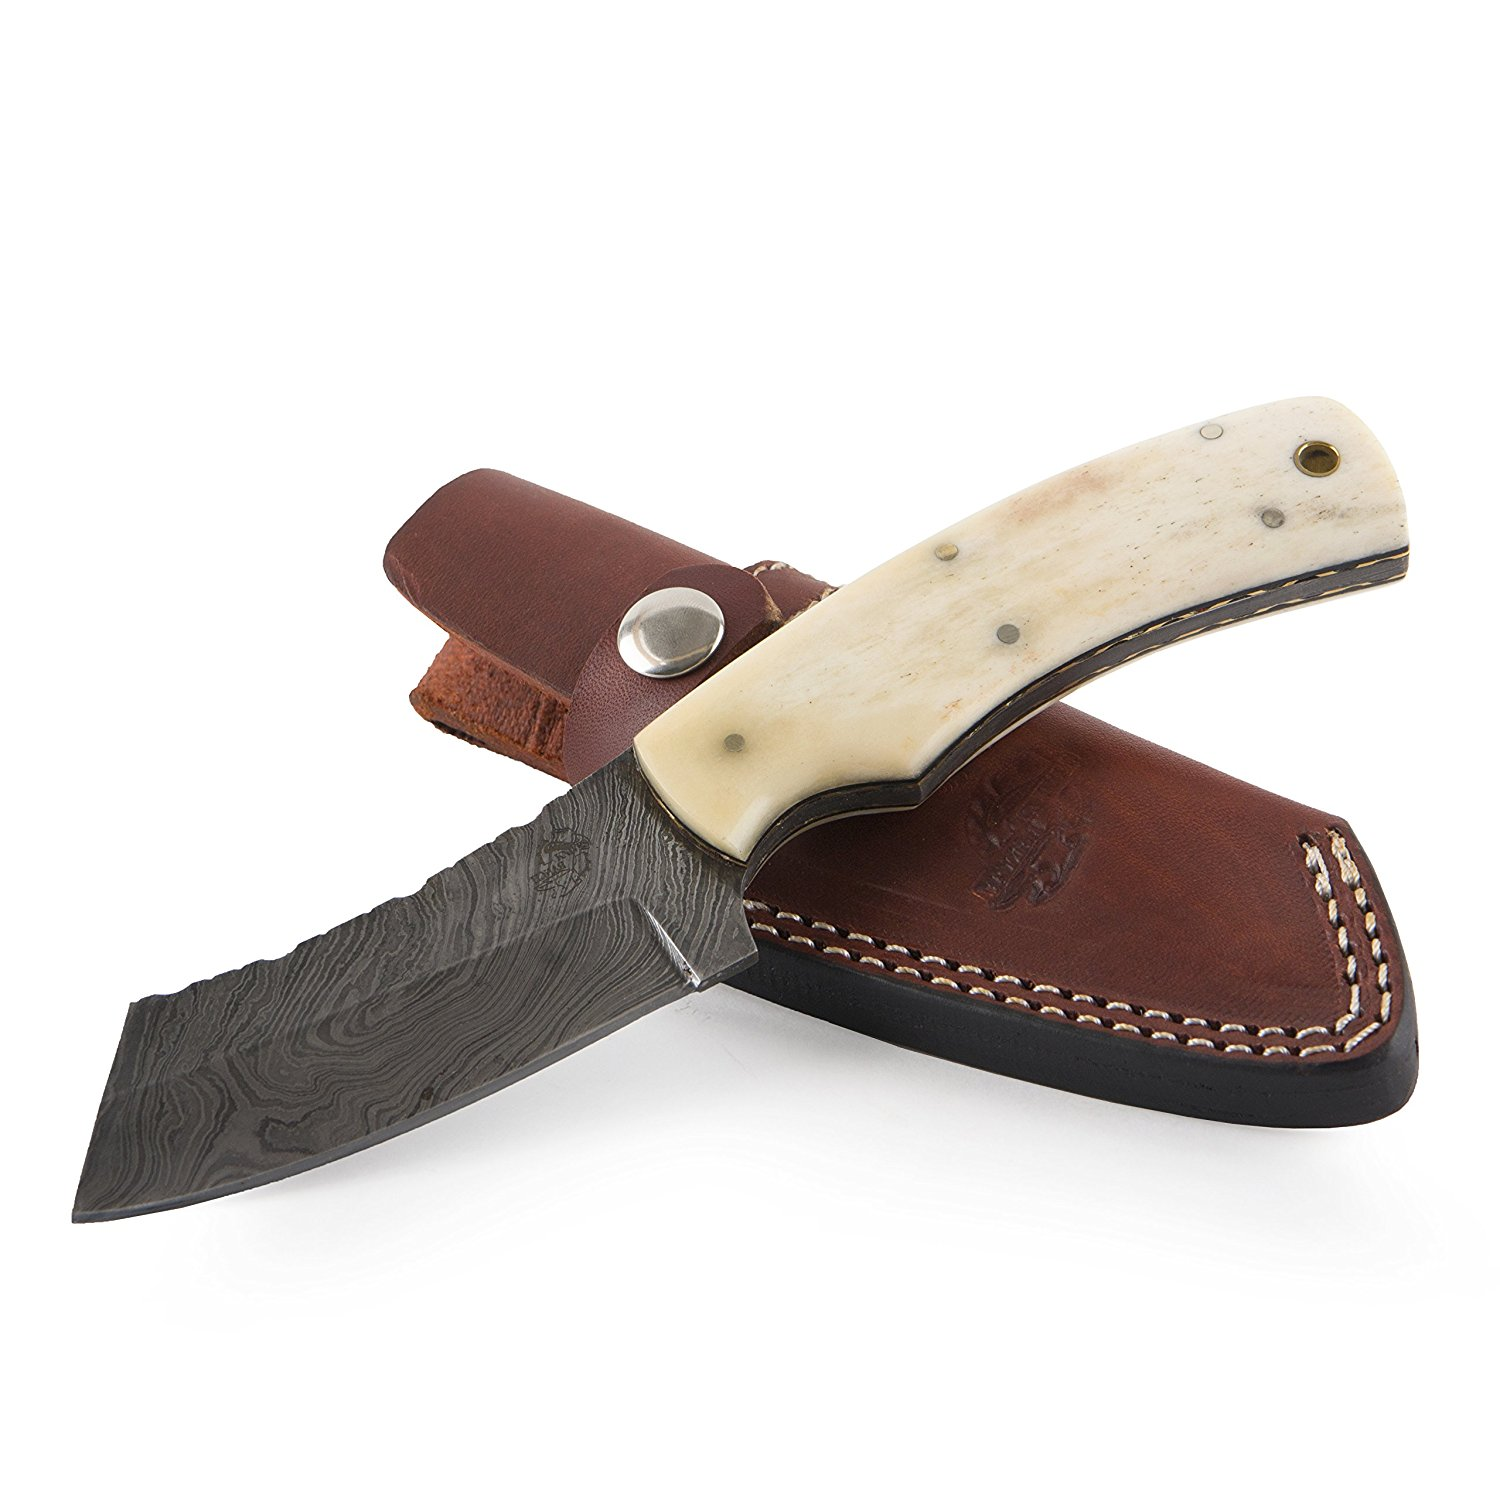 "Knives Ranch Damascus Steel Knives 8"" Fixed Blade Knife – Bone Handle with Brass Liner INCLUDES: Leather Vertical Belt Loop Sheath"